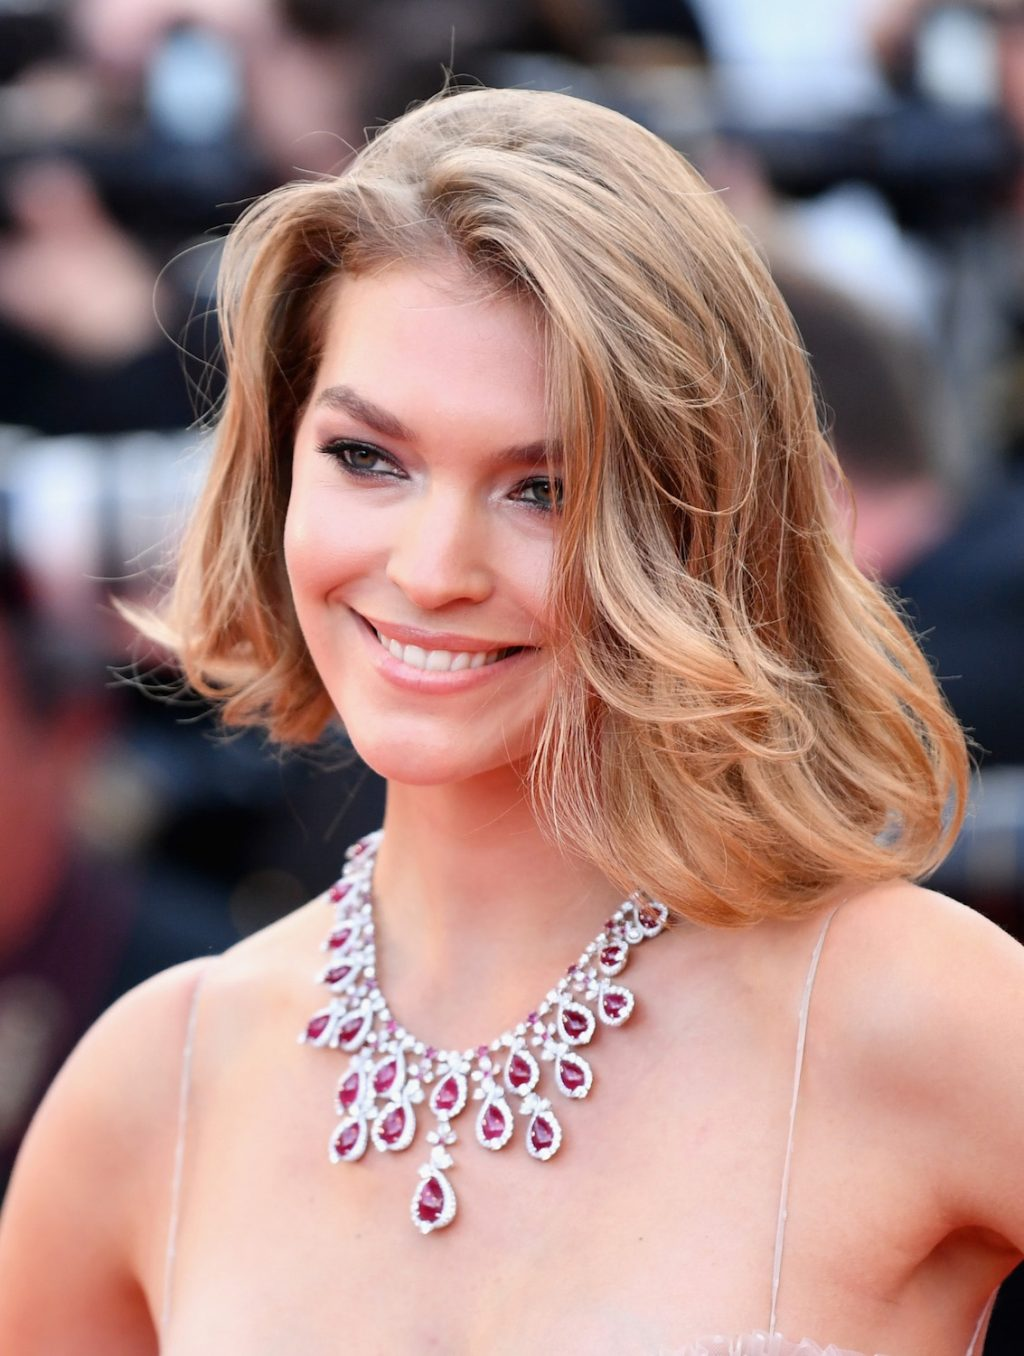 Who's Winning the Jewelry Game at Cannes?